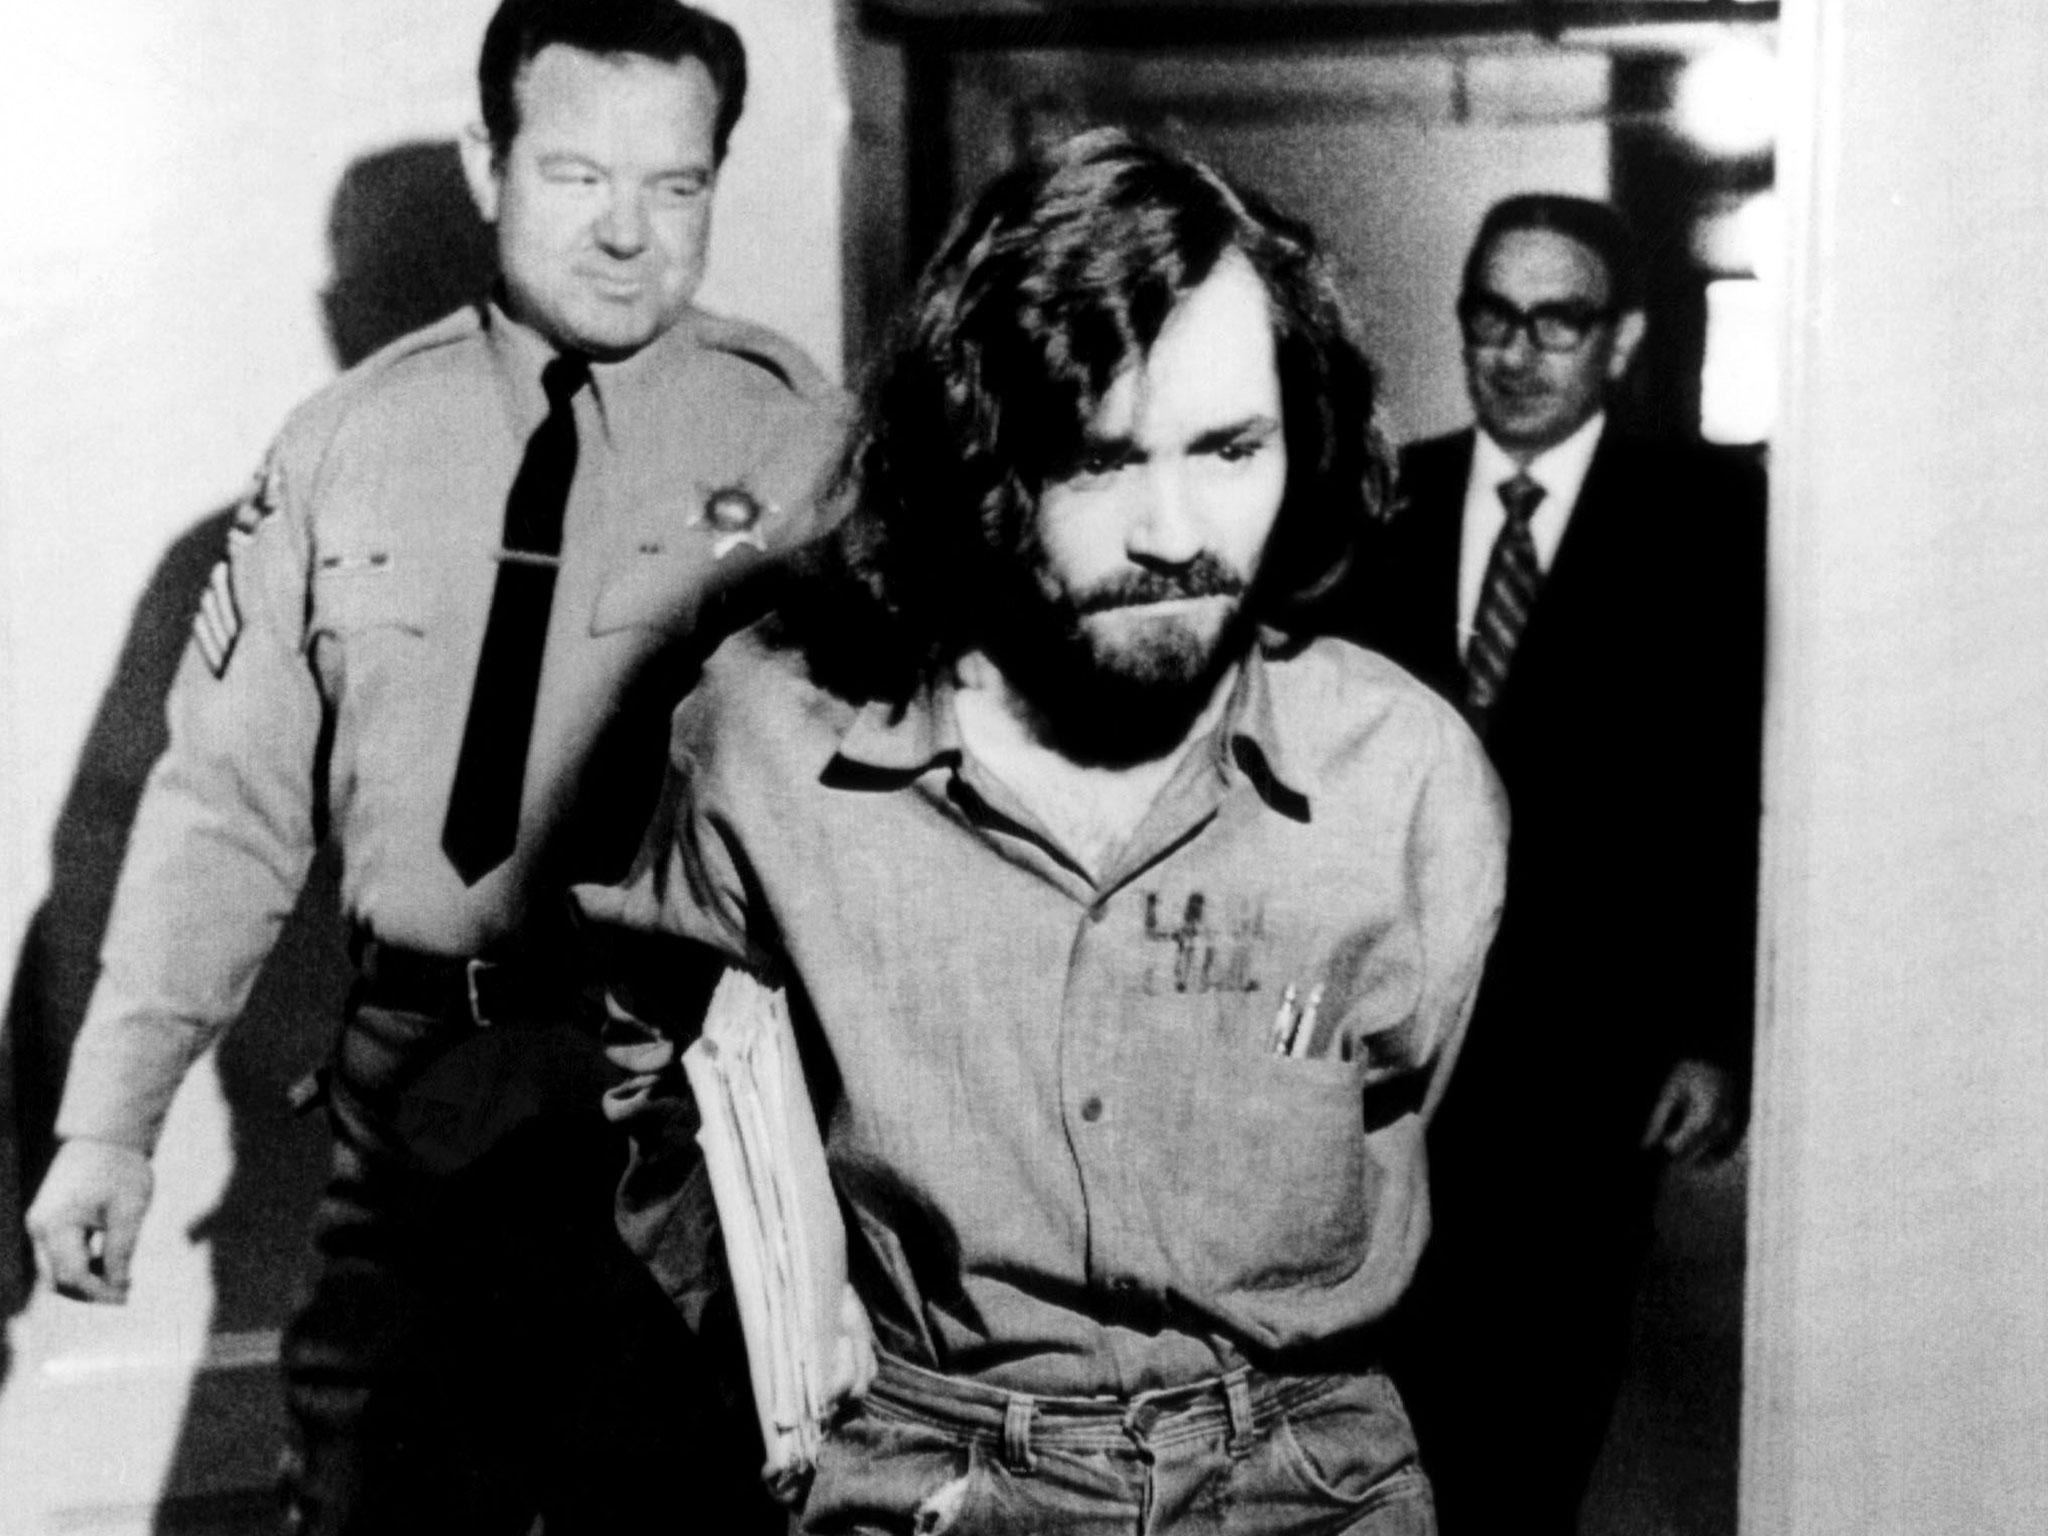 Charles Manson: Serial killer and hippie cult leader